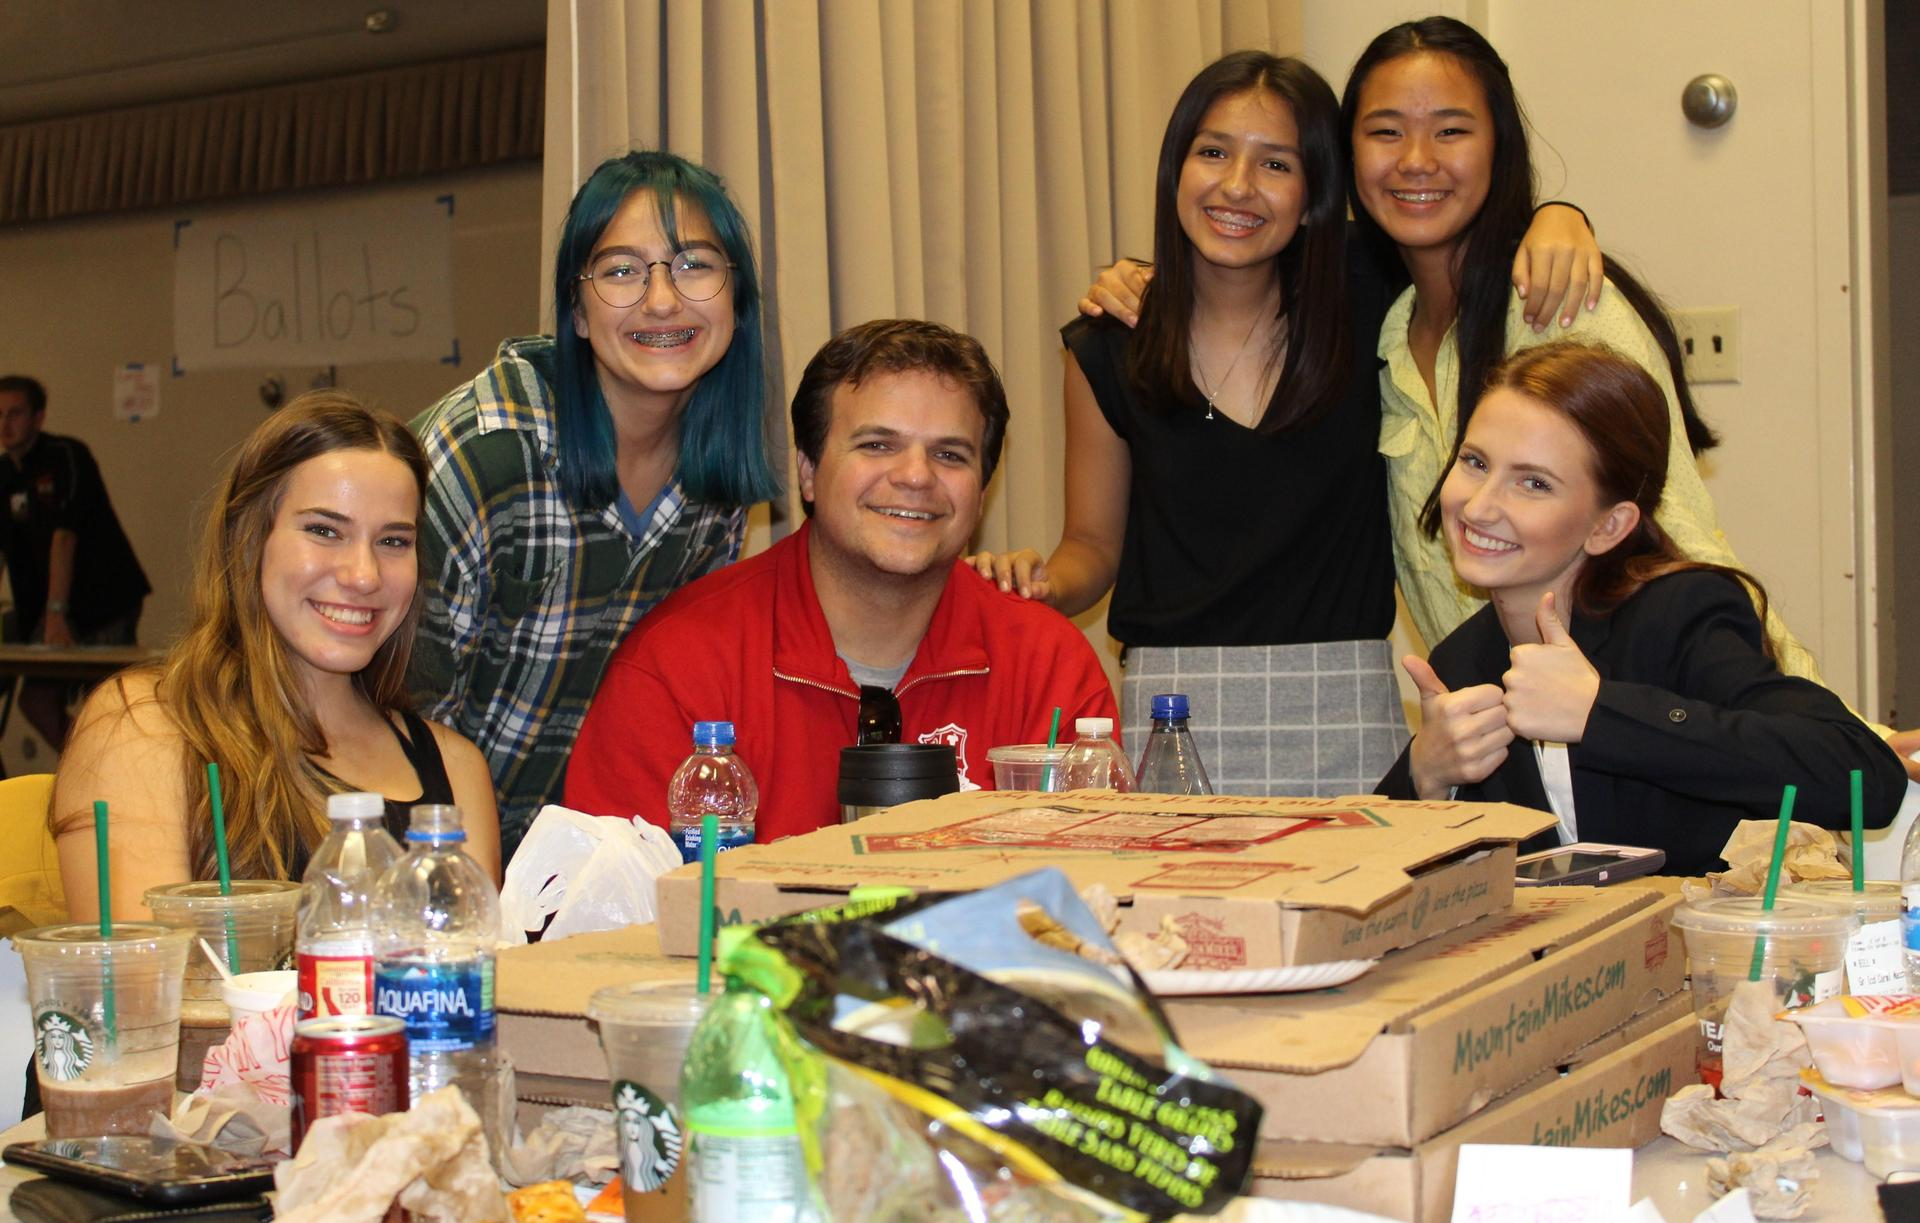 Speech and Debate students, faculty and parents at University of the Pacific